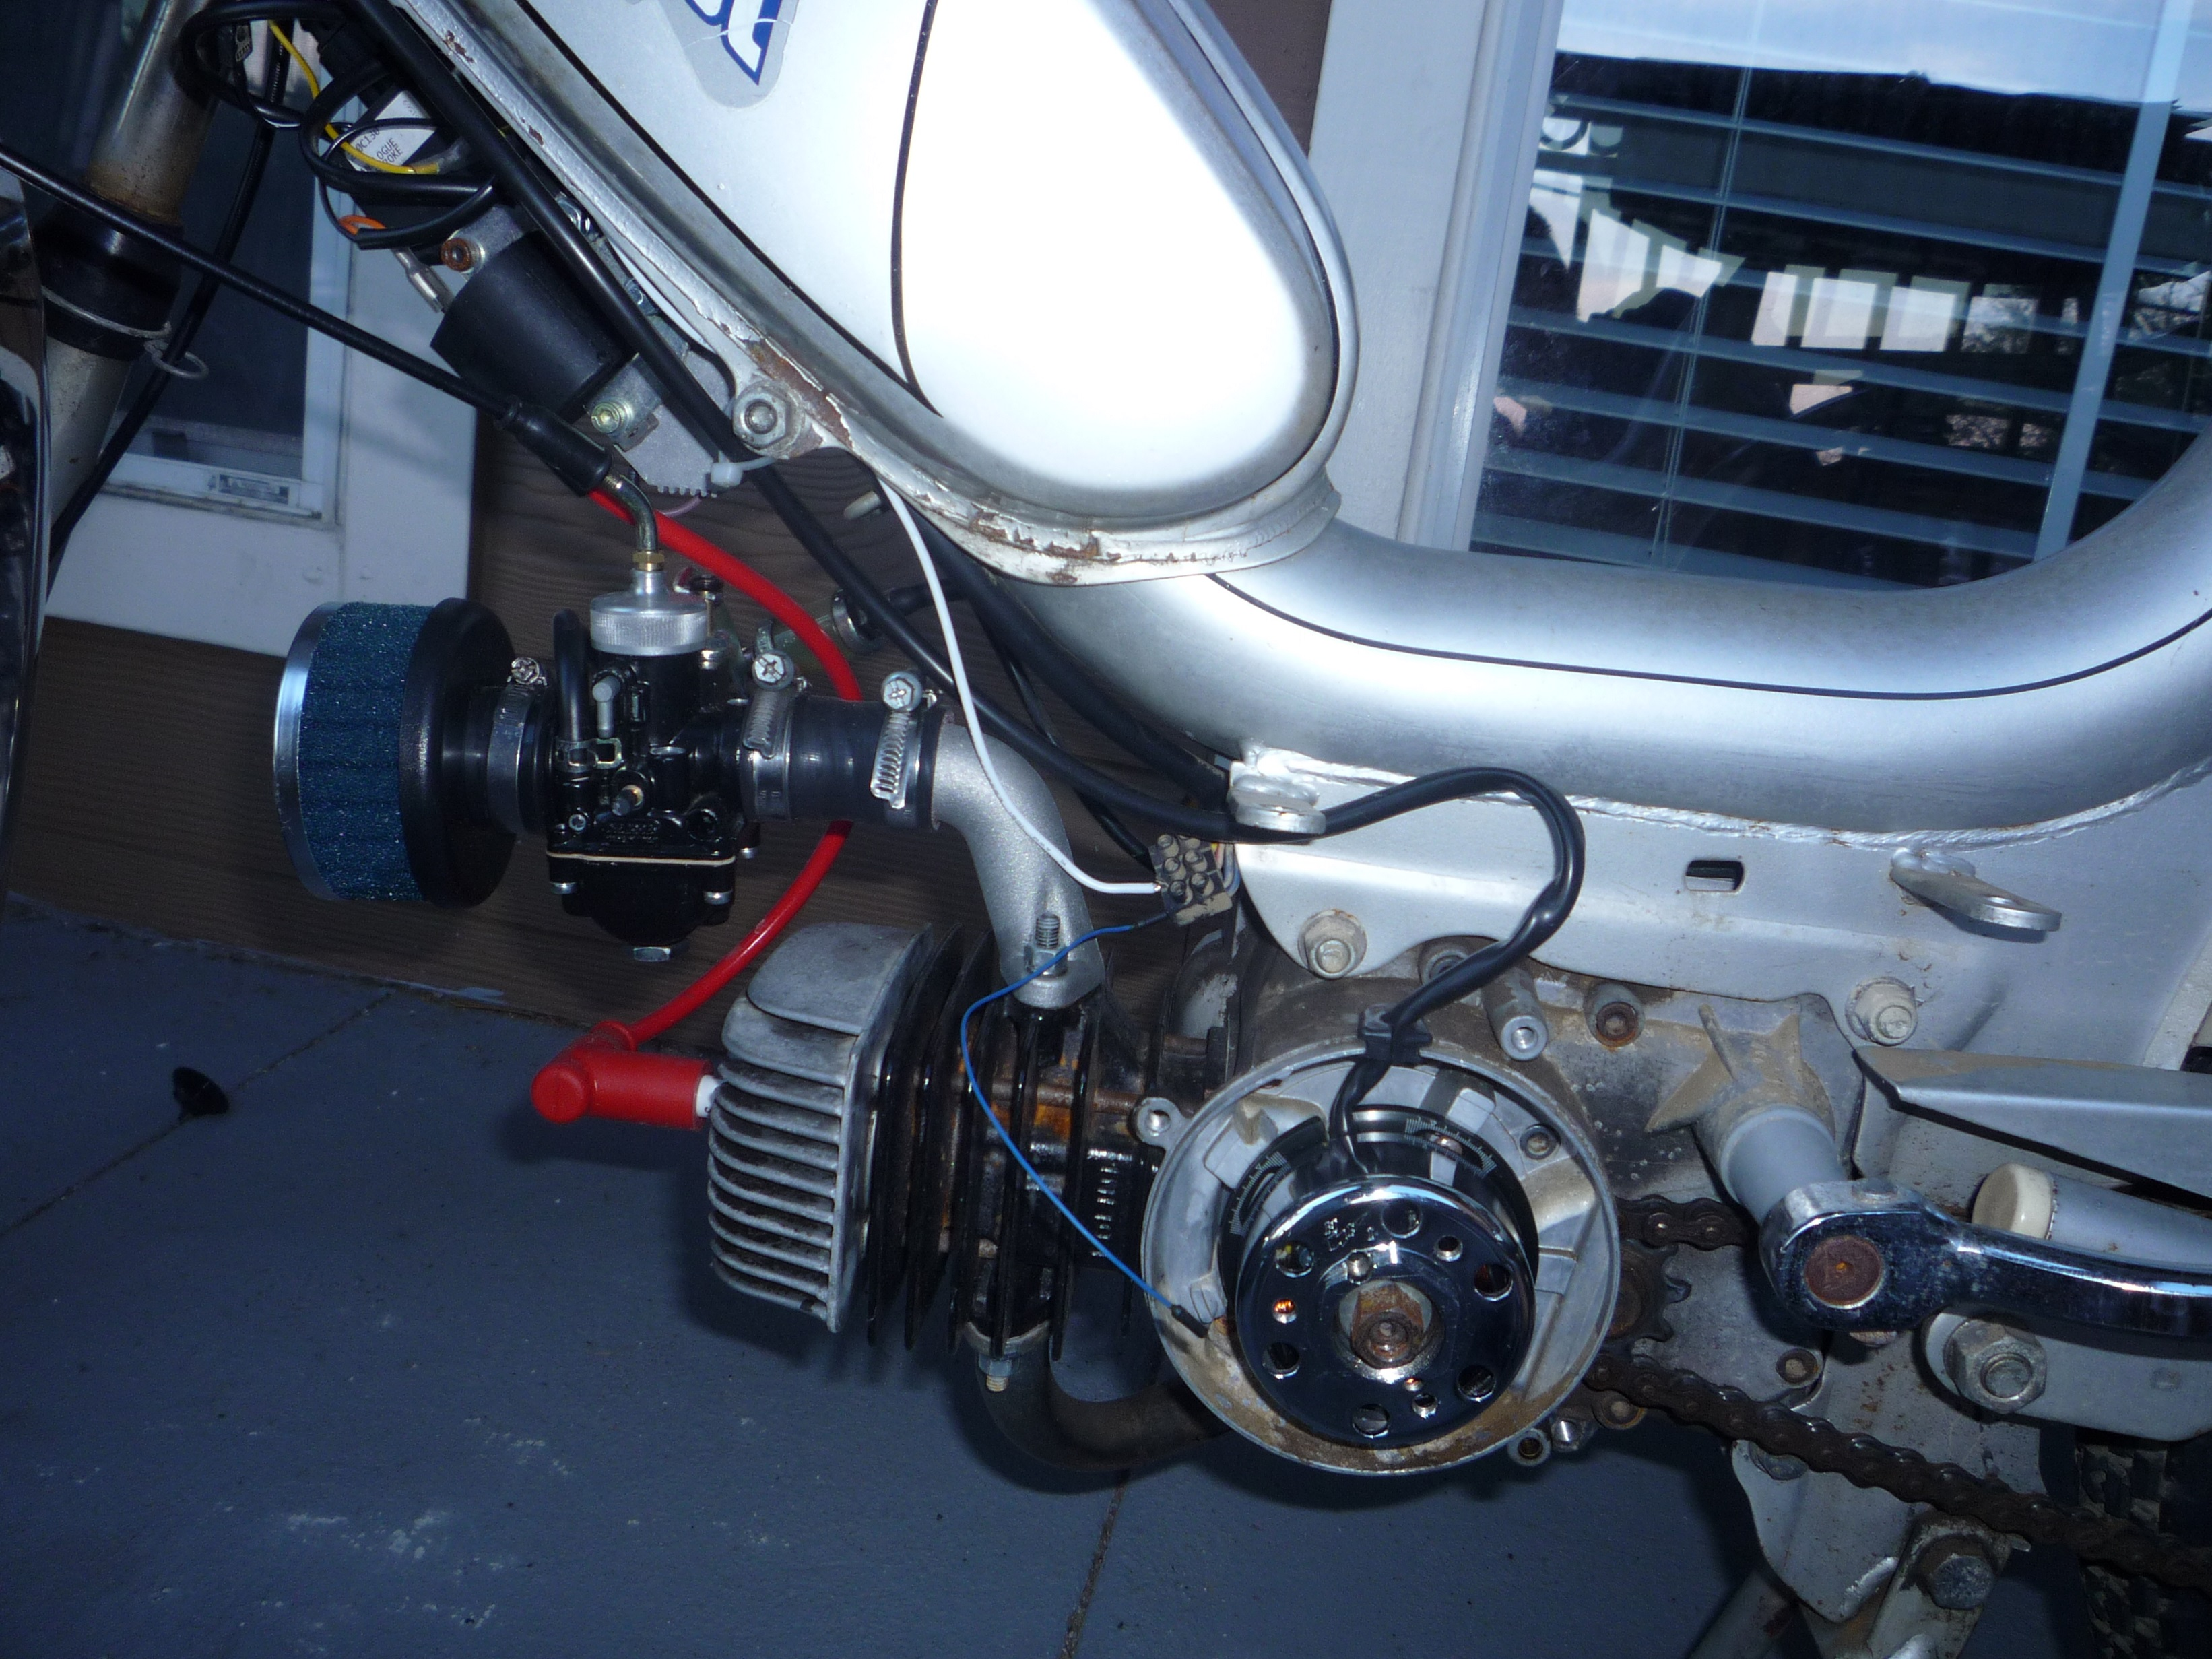 Minarelli V1 Hpi Cdi Brake Stop Light Wiring Moped Army Auto Block Anyone Whos Wired One Of These Recall Which Wire Goes To The Blue Ignition Ground For Lights All Other And